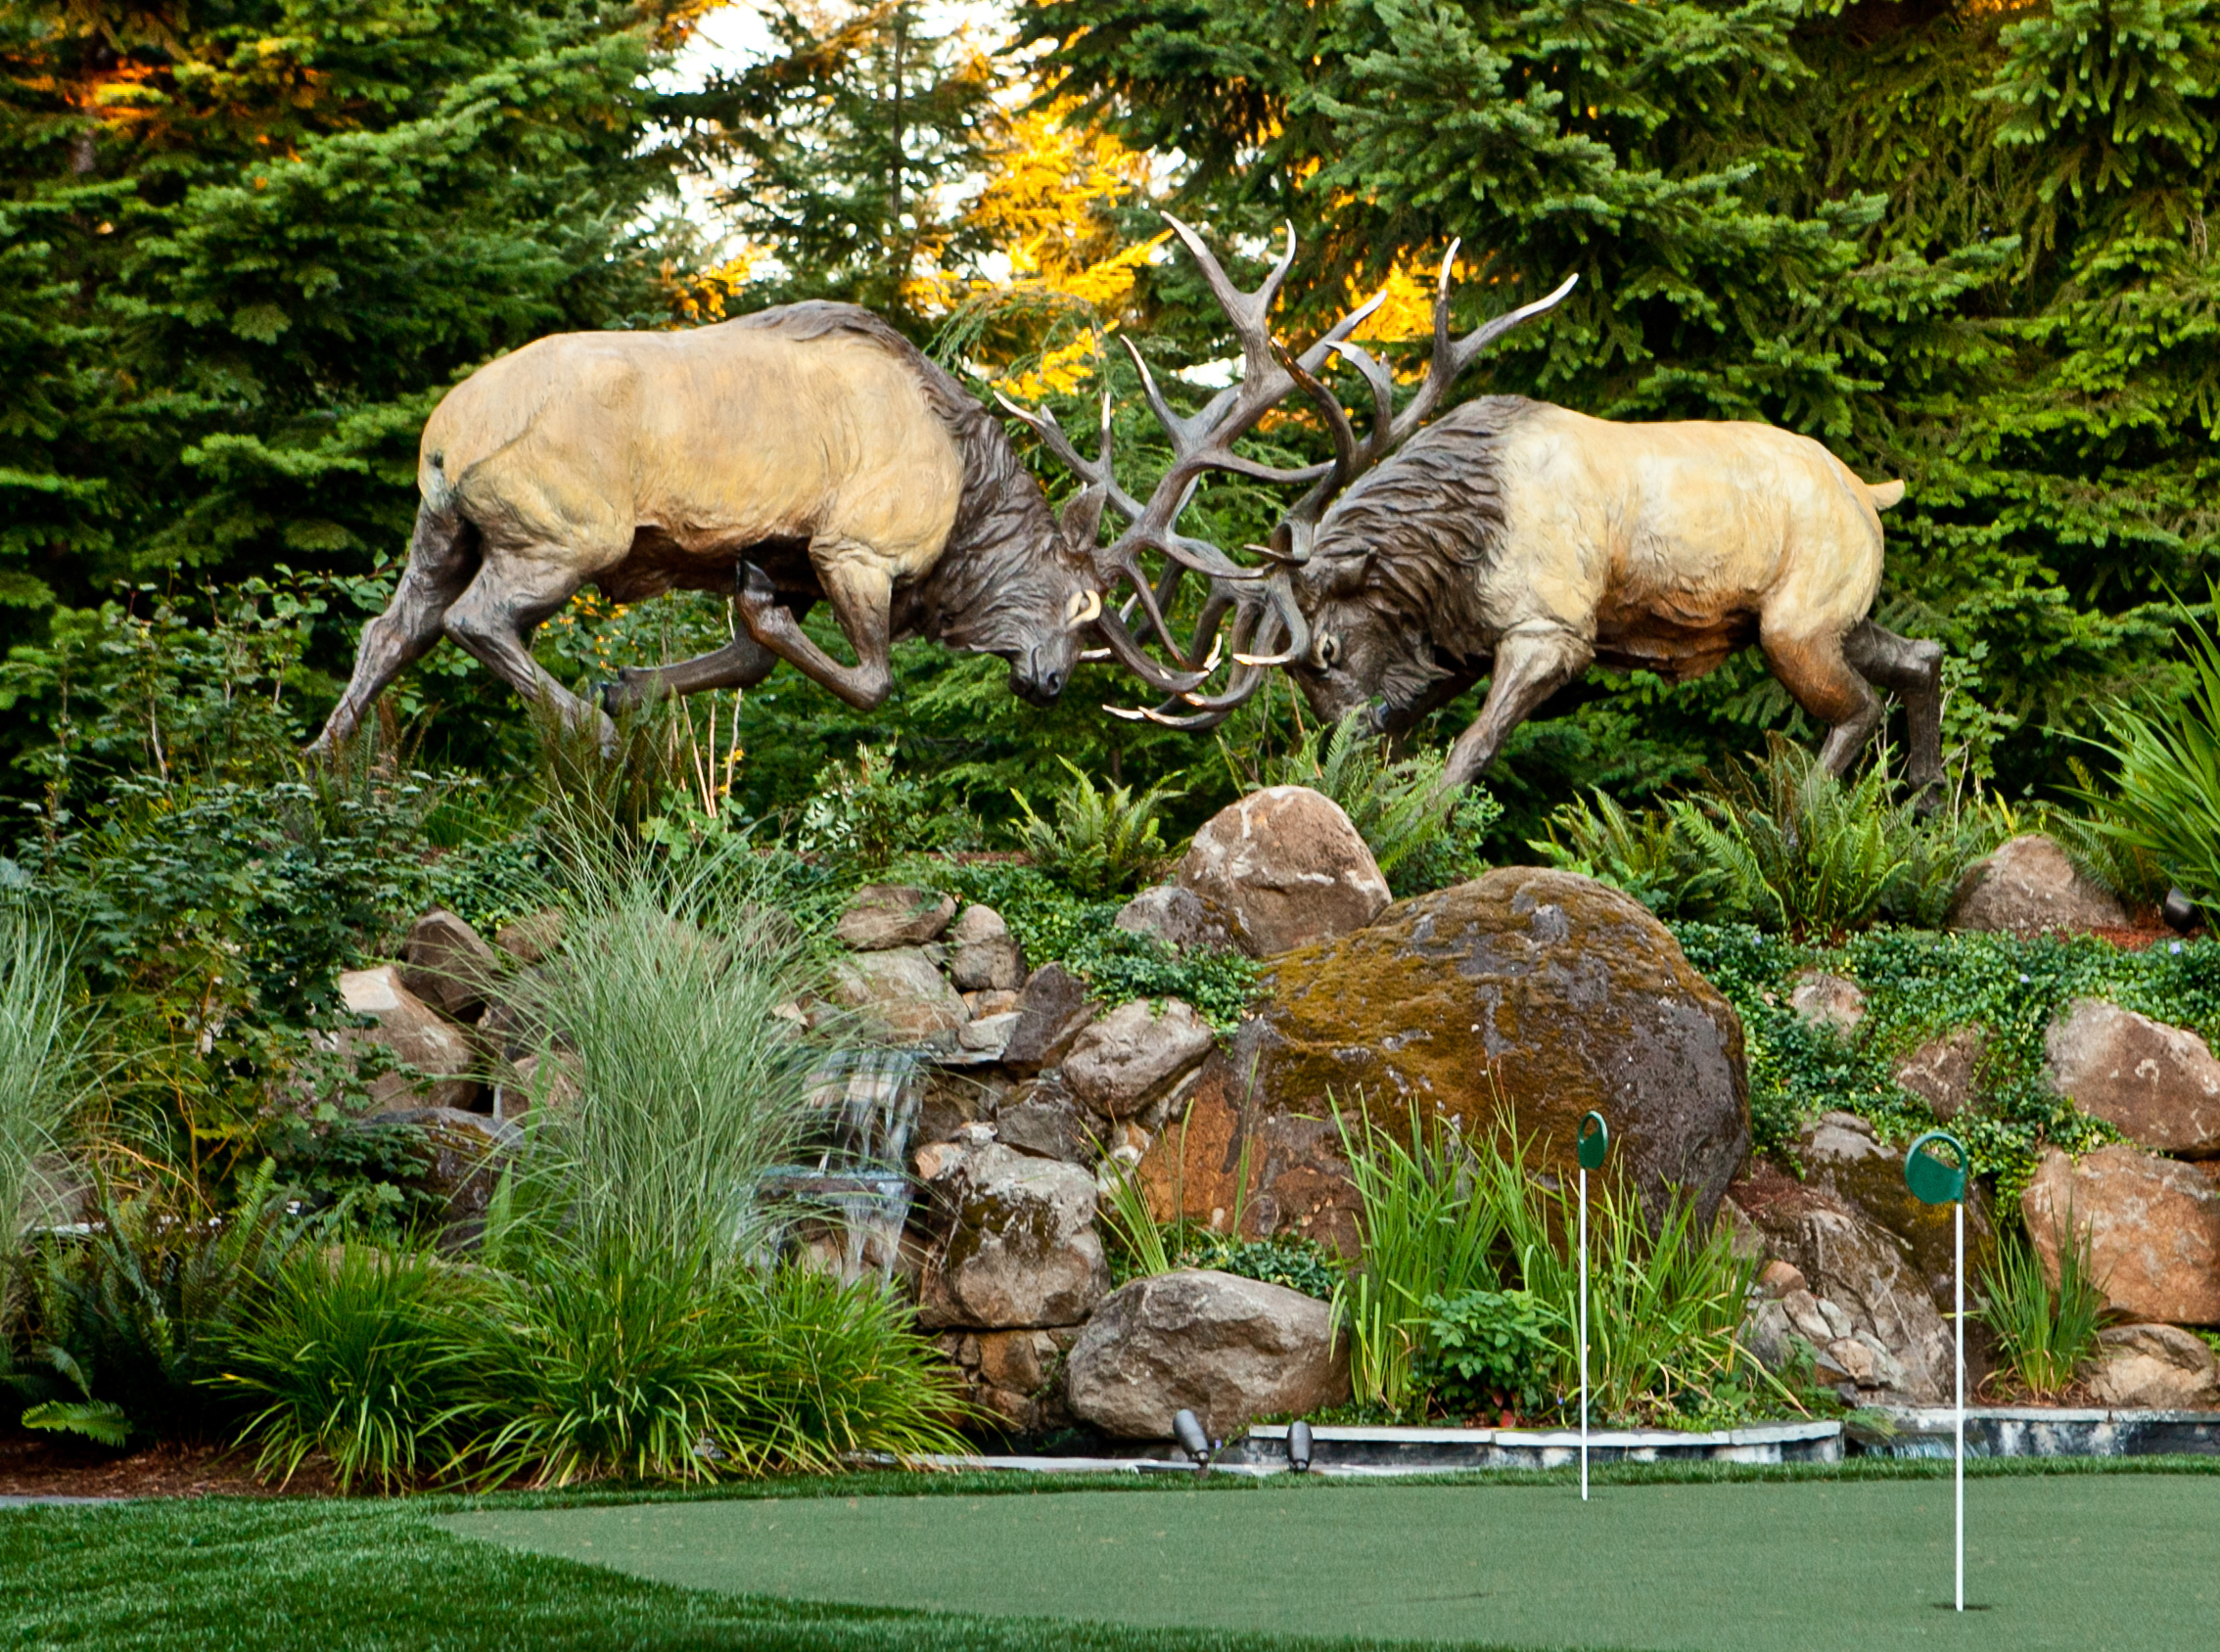 heroic size battling elk rutting, featured on a small putting green